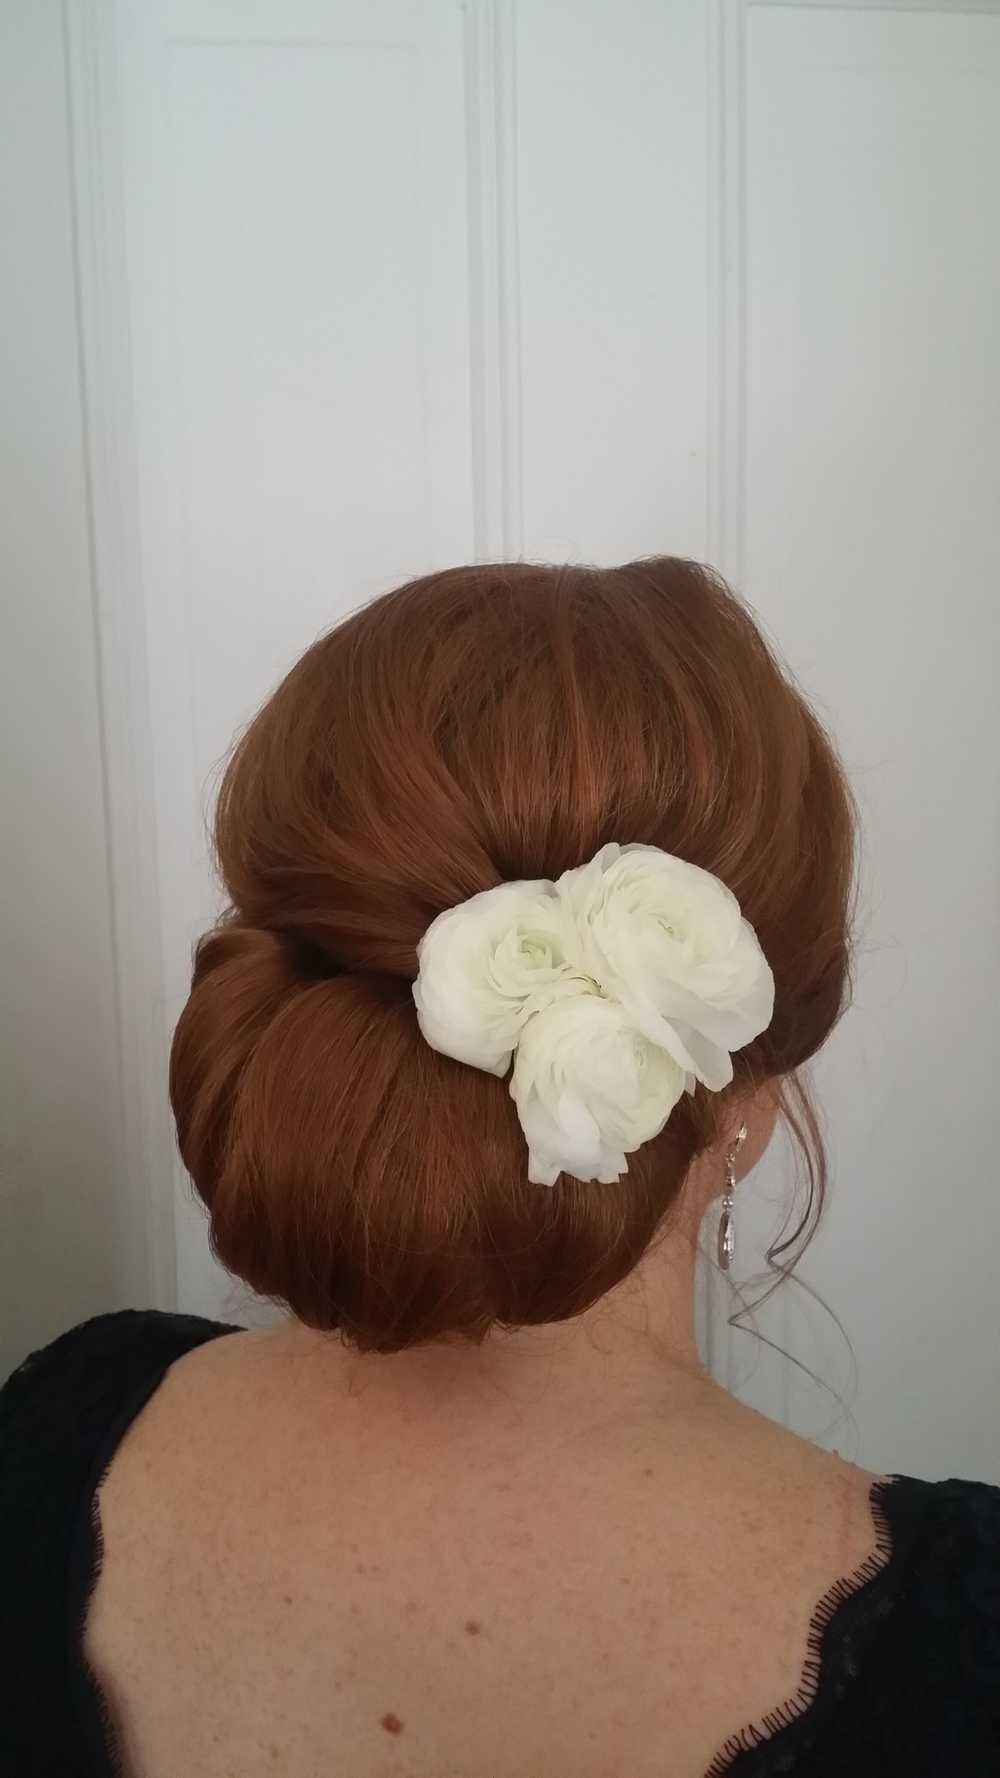 Vintage updo by Beyond Beautiful by Heather, Savannah, GA